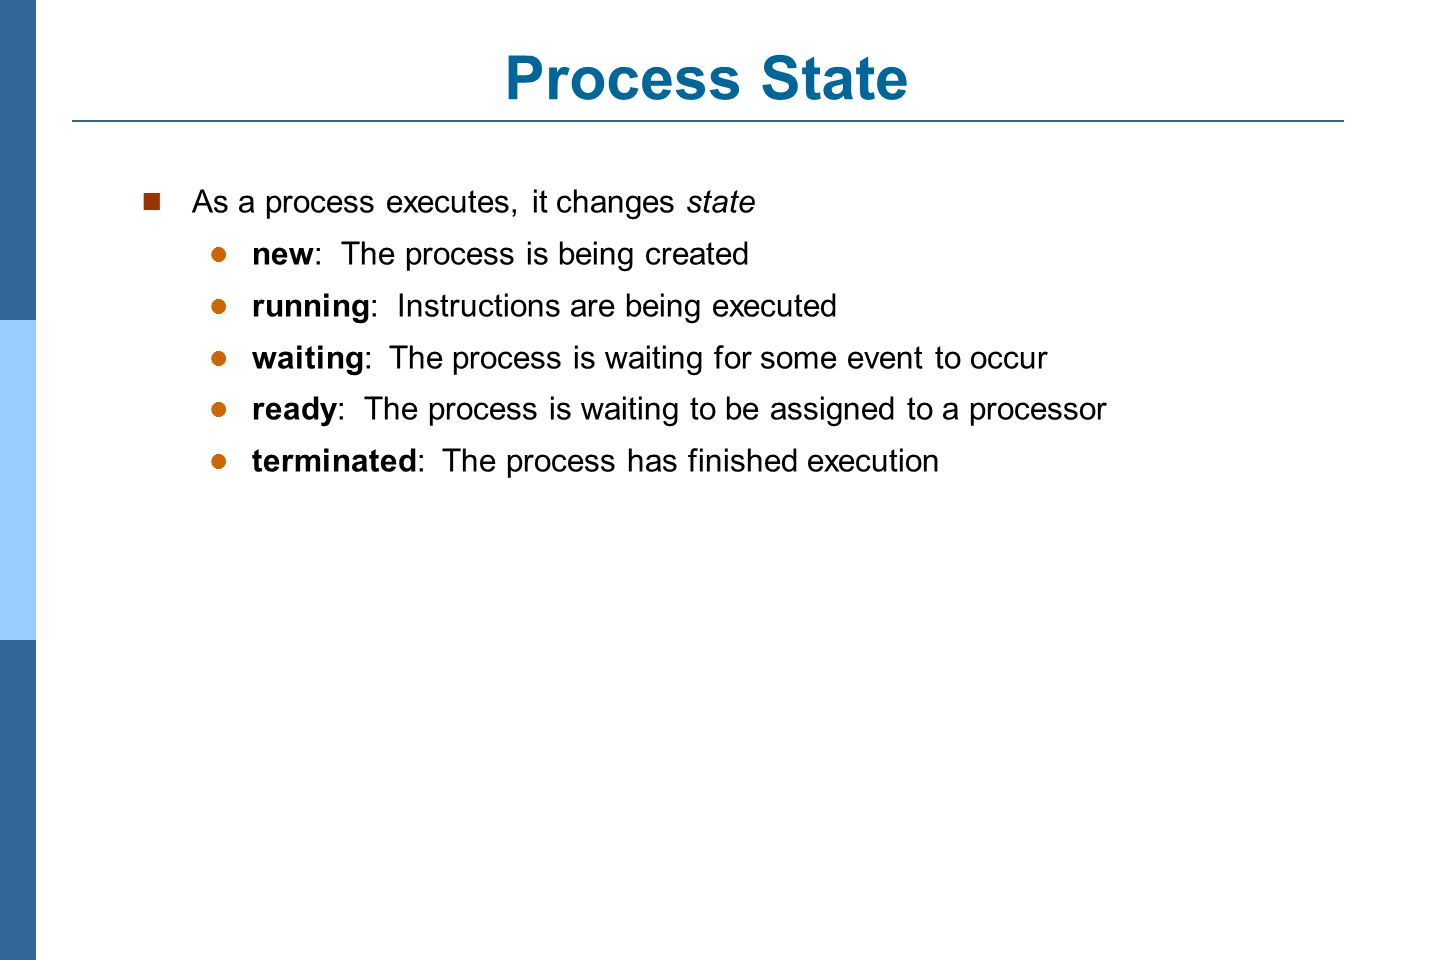 3.11 Silberschatz, Galvin and Gagne ©2011 Operating System Concepts Essentials – 8 th Edition Process State As a process executes, it changes state new: The process is being created running: Instructions are being executed waiting: The process is waiting for some event to occur ready: The process is waiting to be assigned to a processor terminated: The process has finished execution